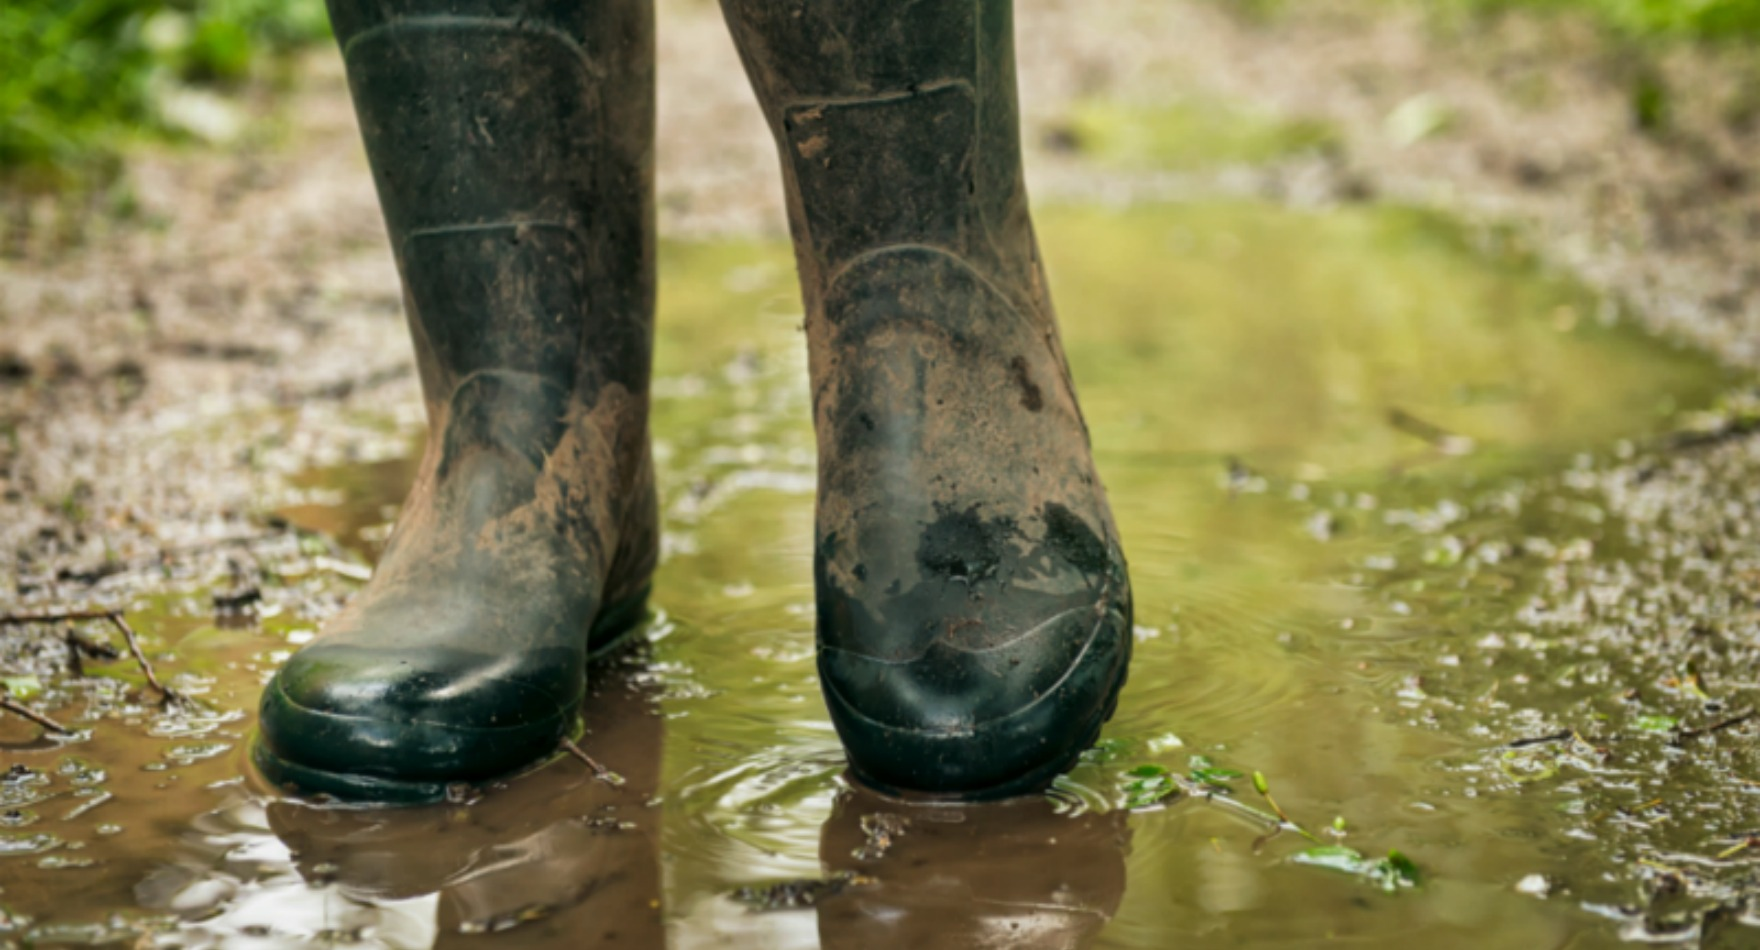 Rainy Day People: 5 Ways Lawn Care People Stay Busy When Business is all Wet